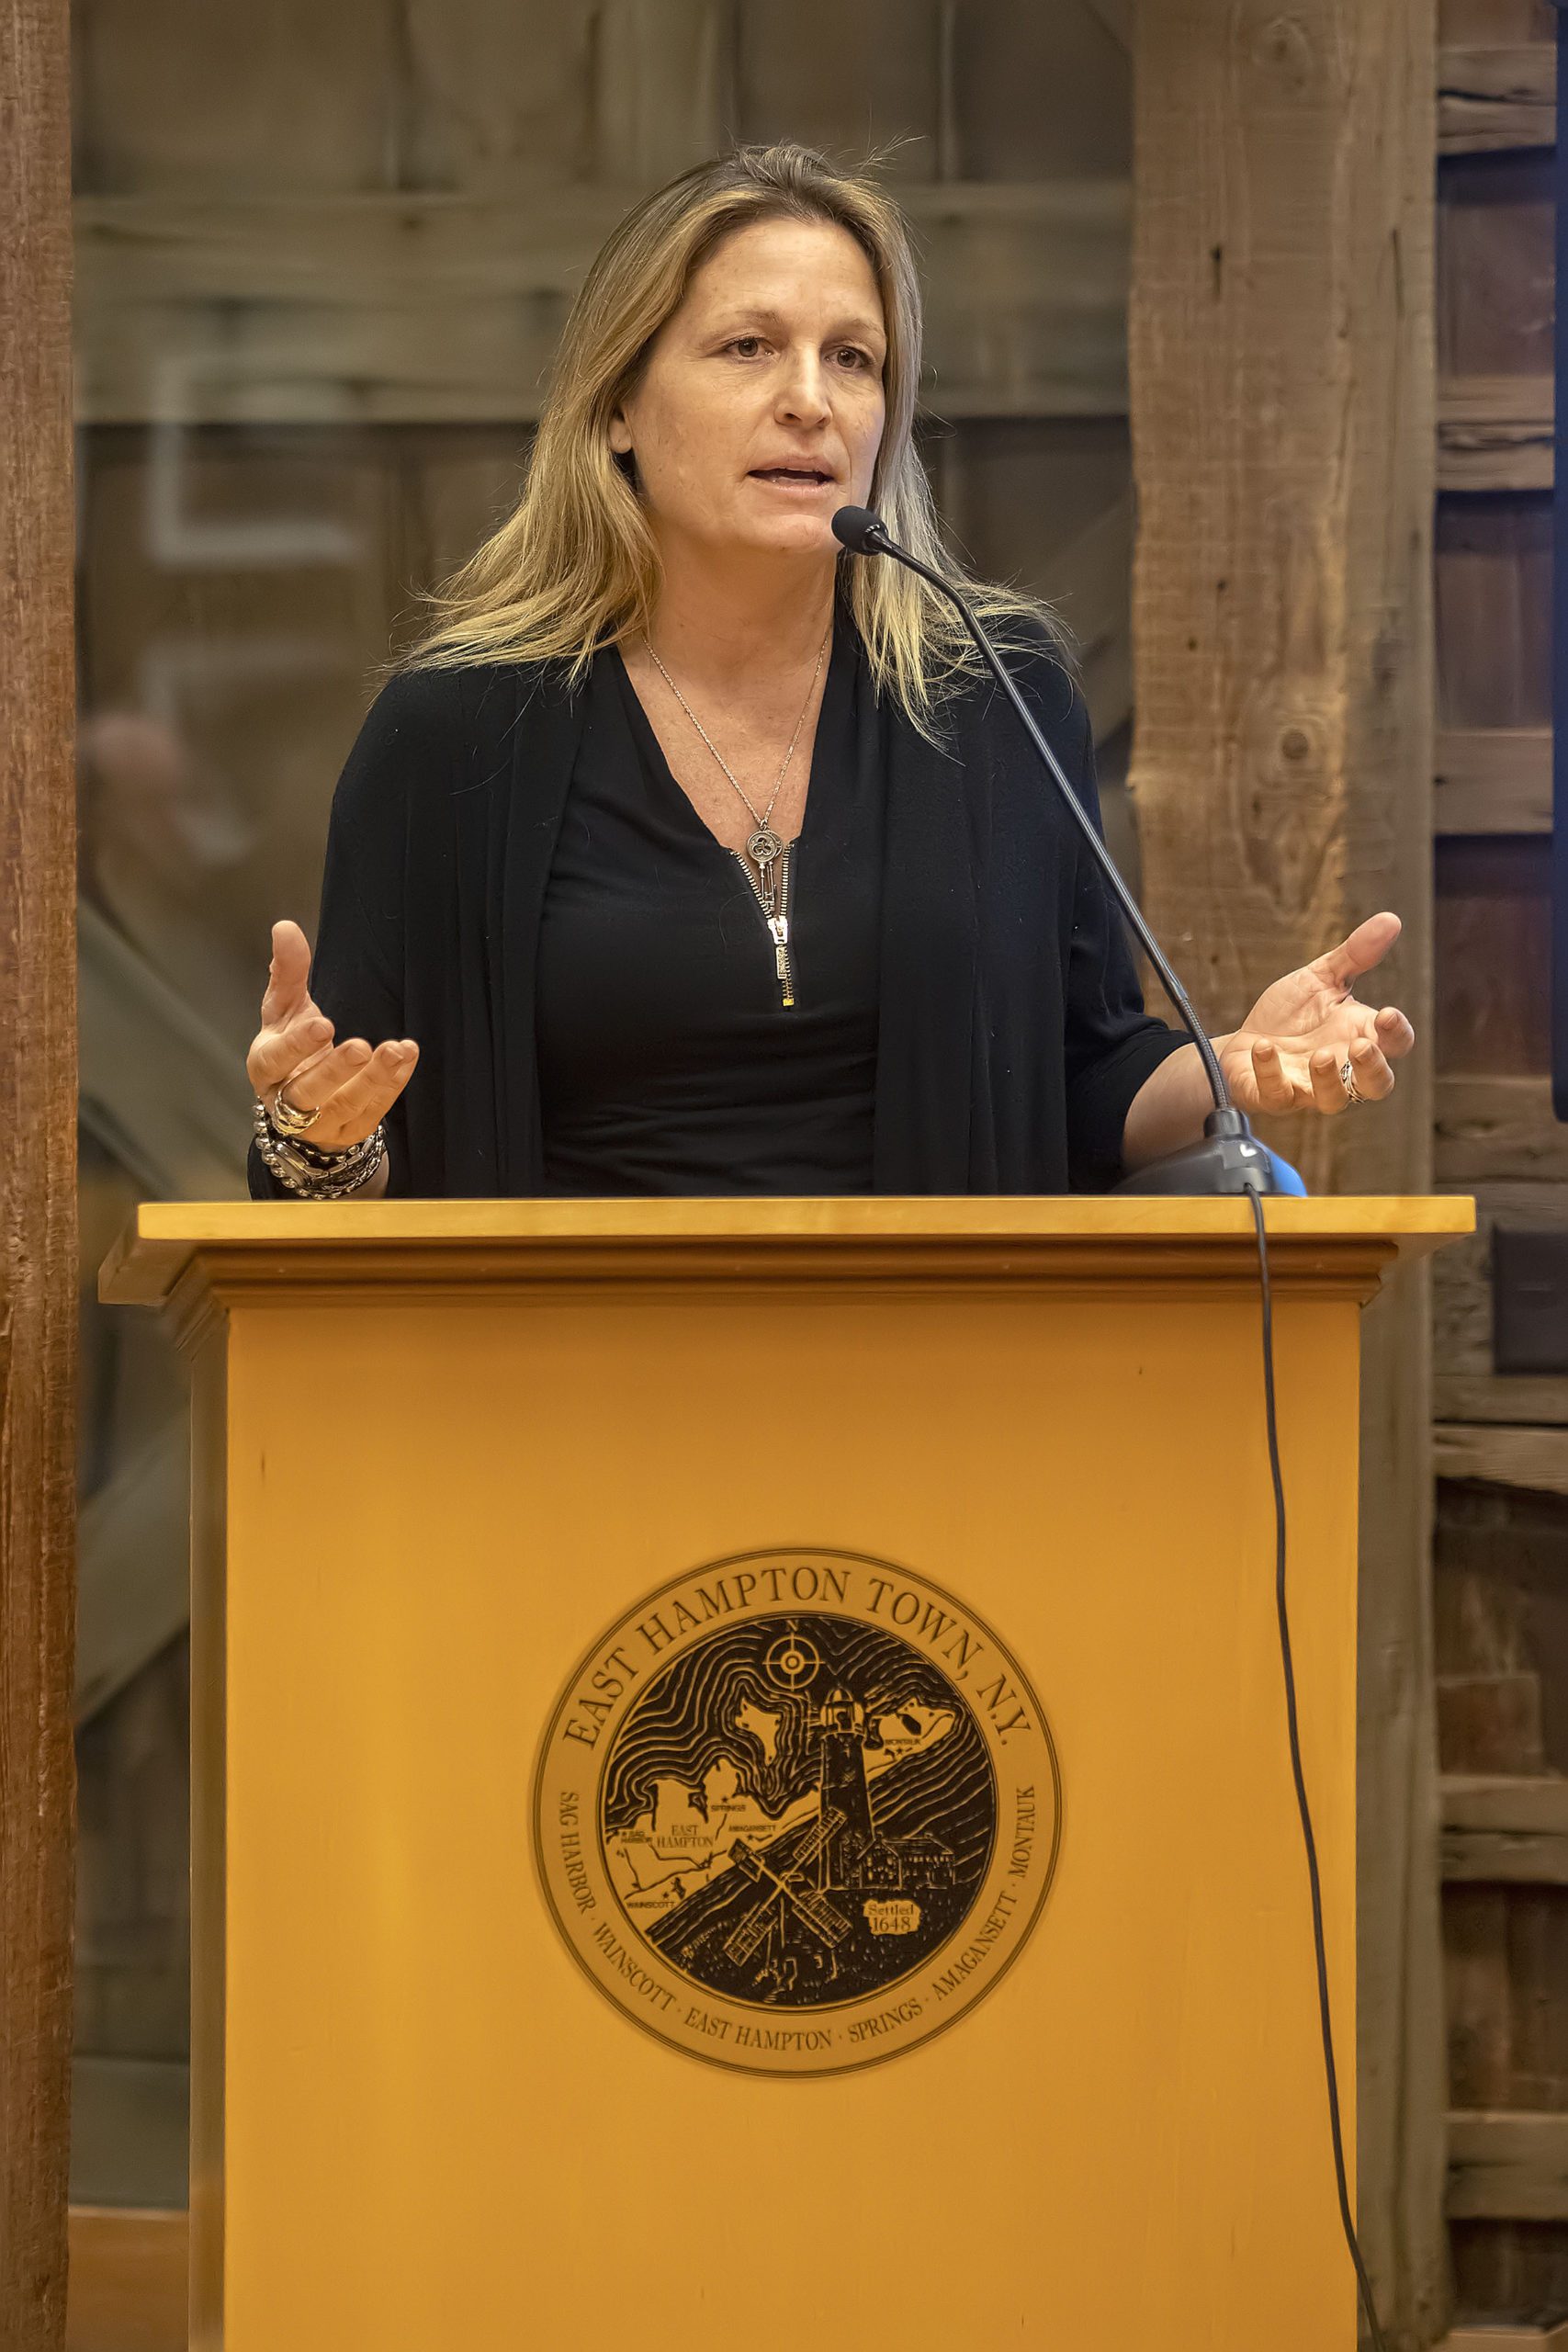 Nancy Atlas thanked the board for listening to the concerns of musicians.